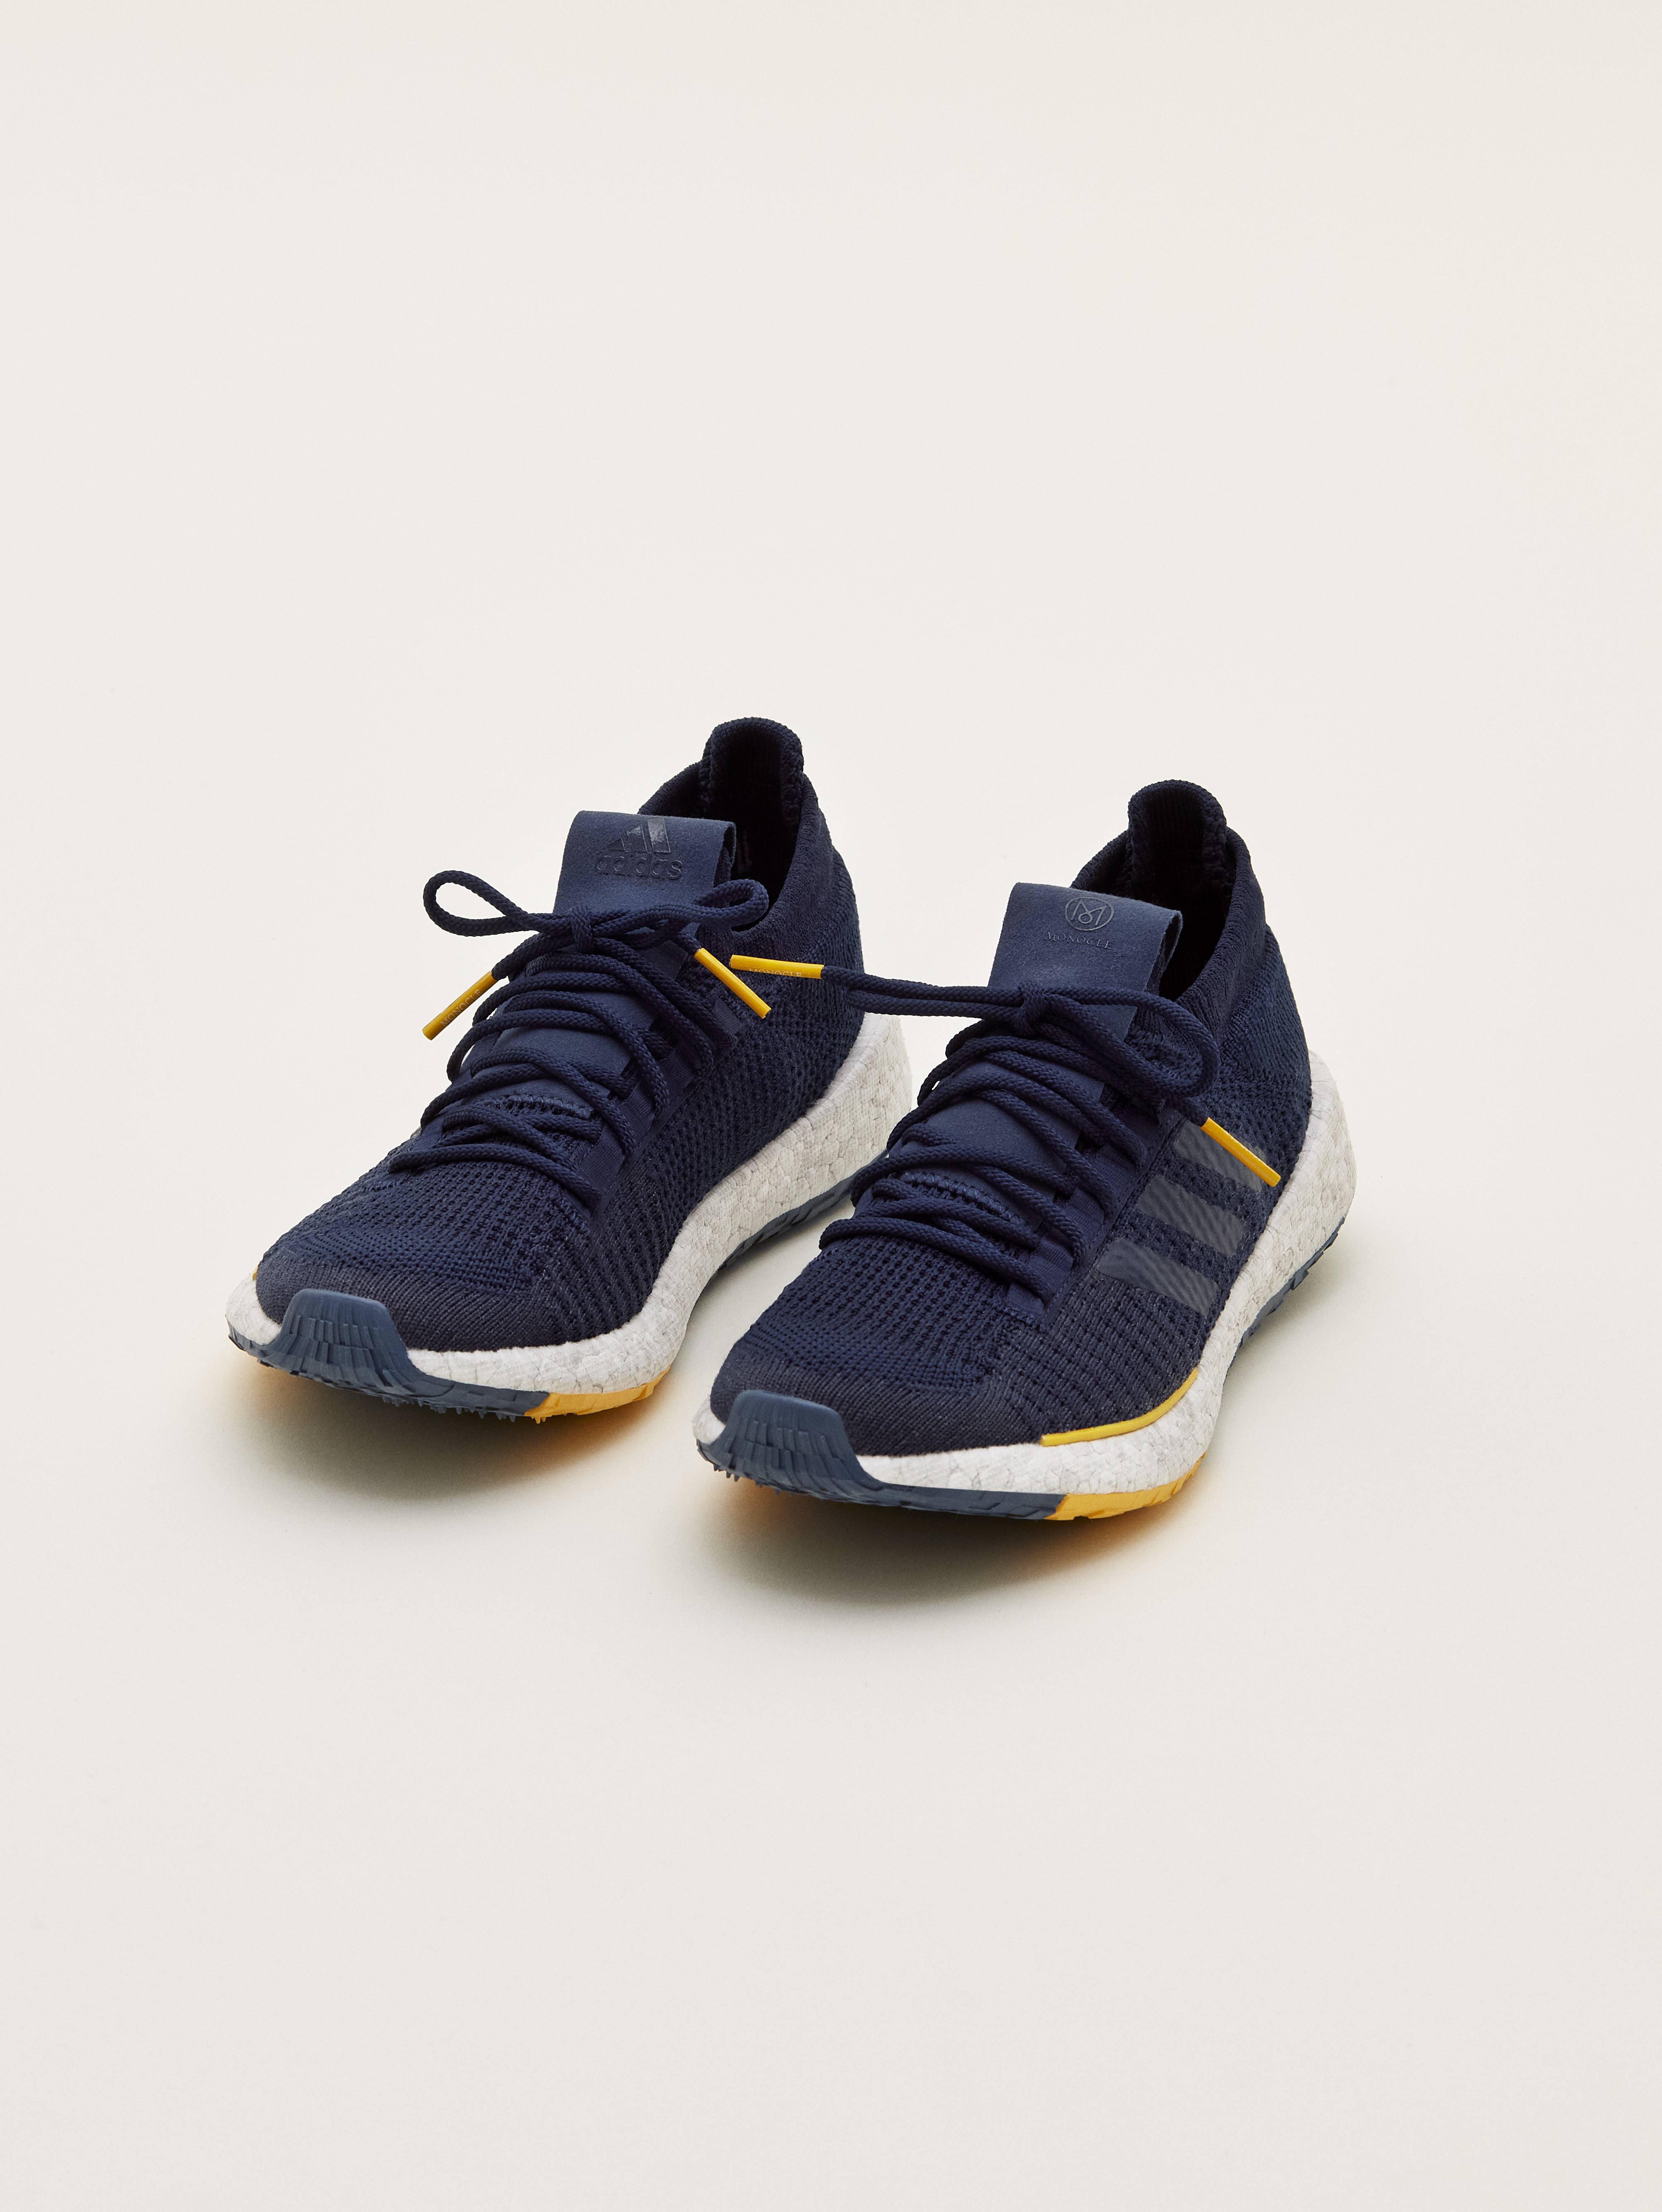 Adidas x Monocle | Collaborations | The